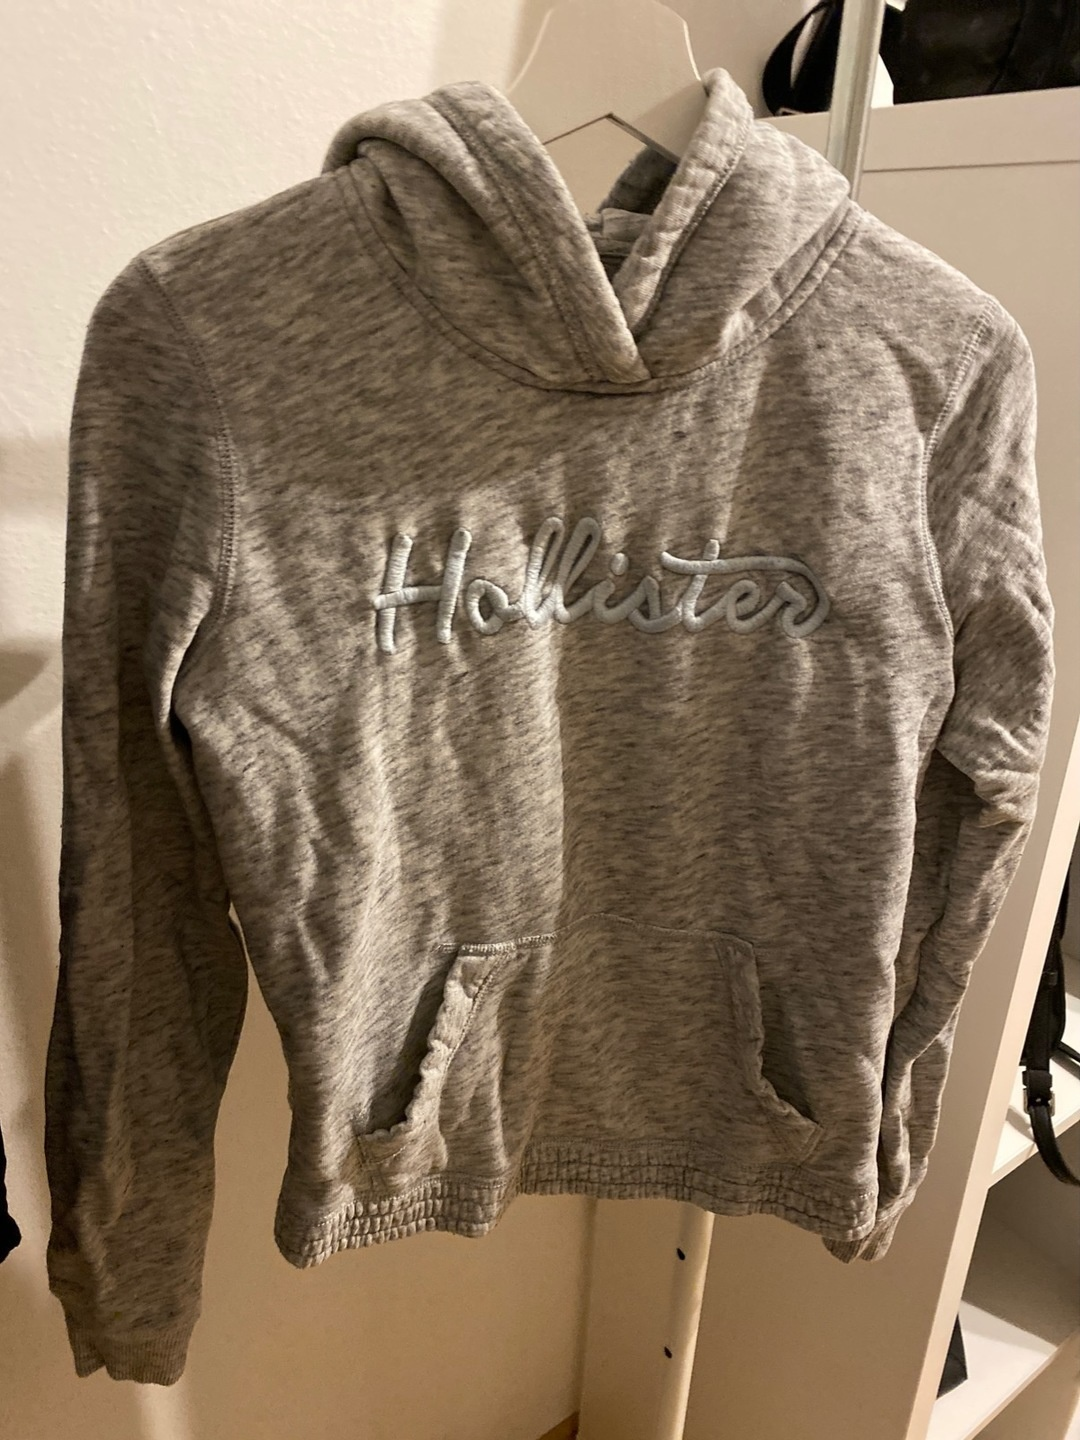 Women's jumpers & cardigans - HOLLISTER photo 1